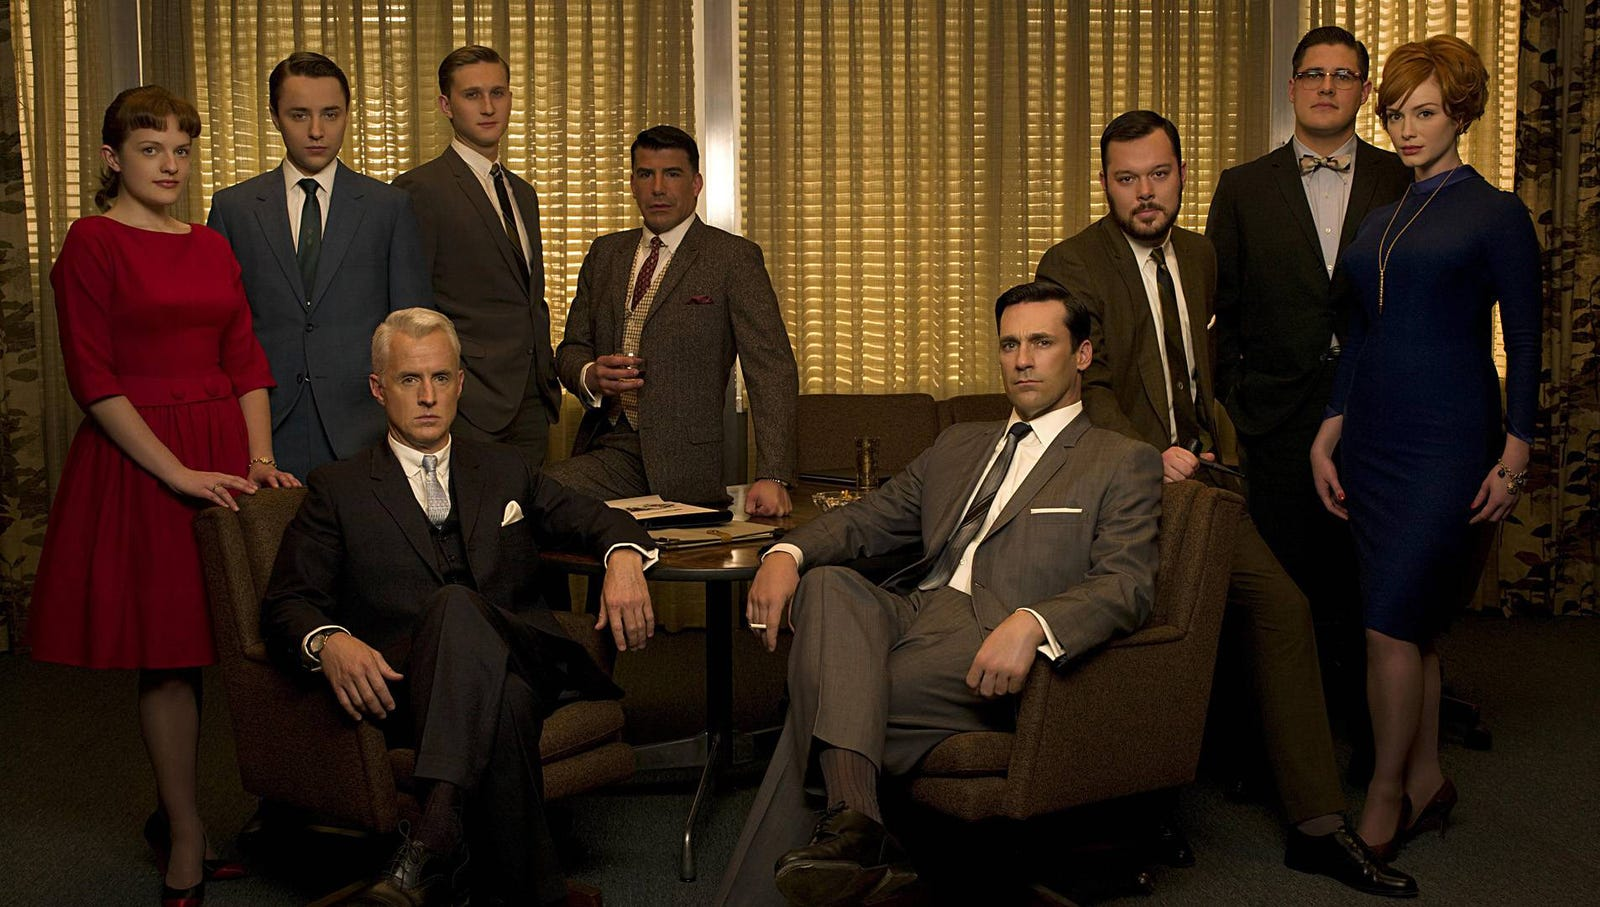 Mad Men: The period drama began with the story of Don Draper as a suave, successful New York City advertising executive in the 1960s, and culminated in the highly anticipated seventh and final season, which portrayed a demoralized, cynical 148-year-old Draper moving to Los Angeles to start a new firm in the year 2065.